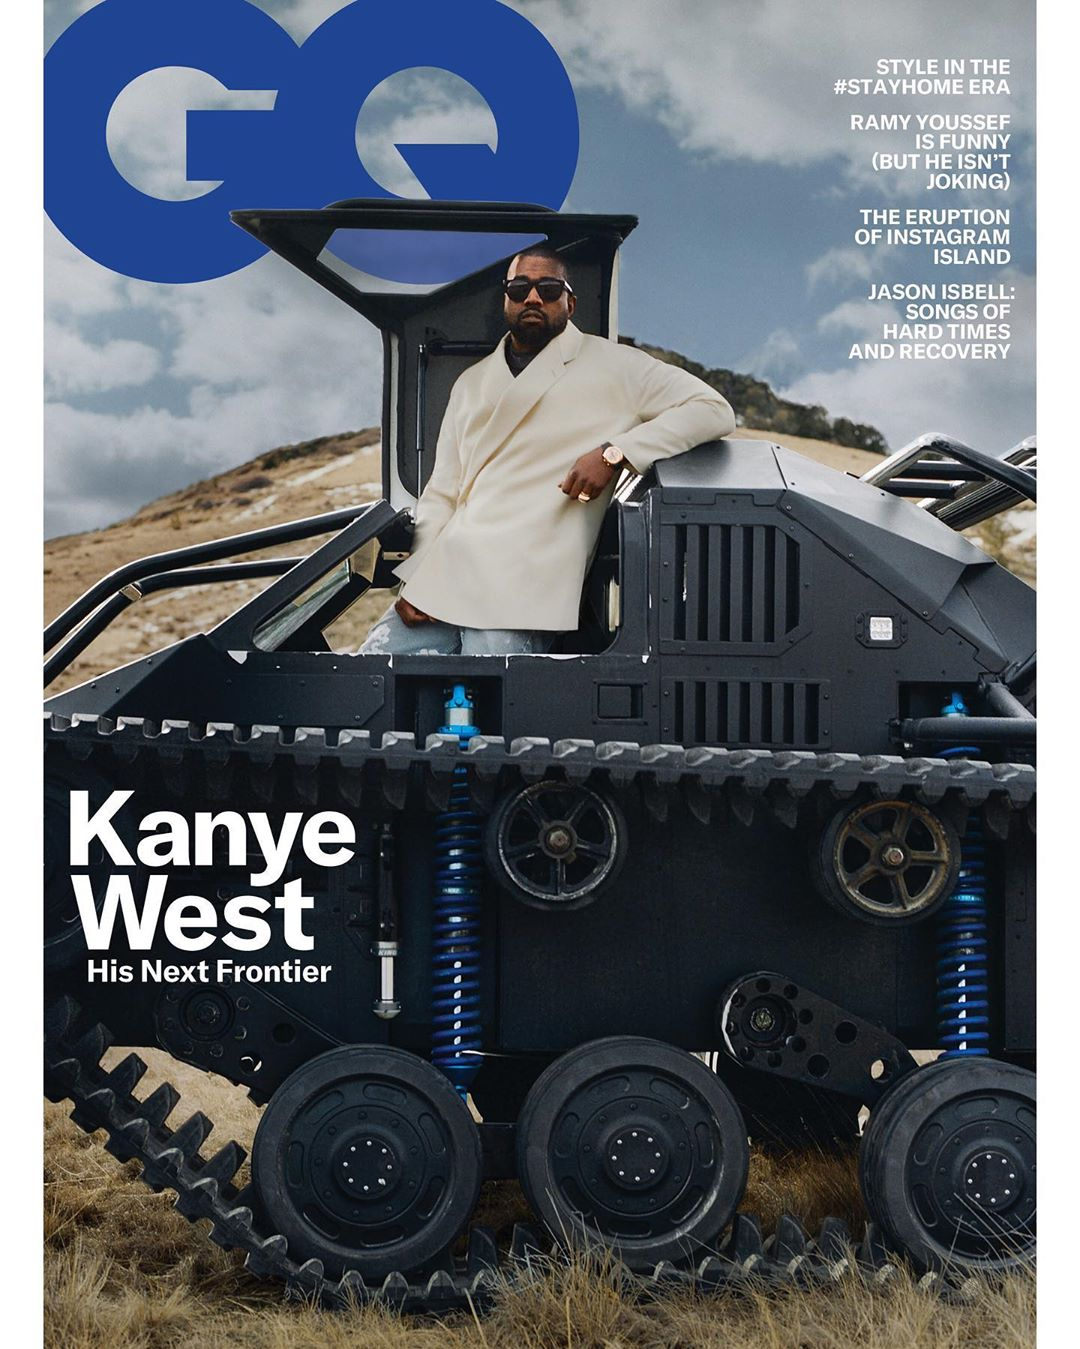 Kanye West is Letting Us Inside his Empire for the May Editon of GQ Magazine